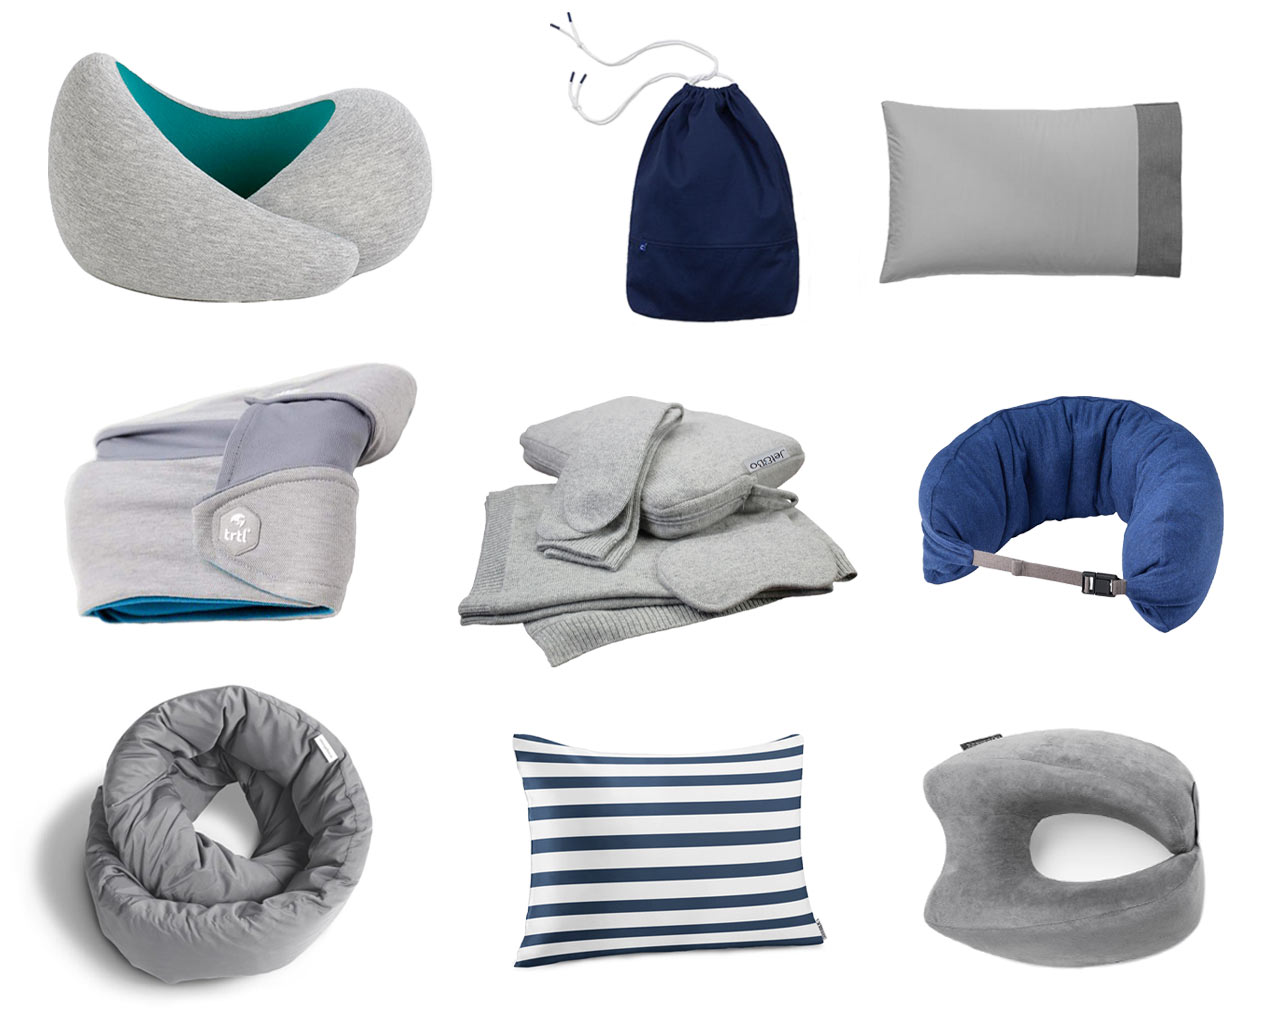 8 Travel Pillows so You Can Travel in Comfort